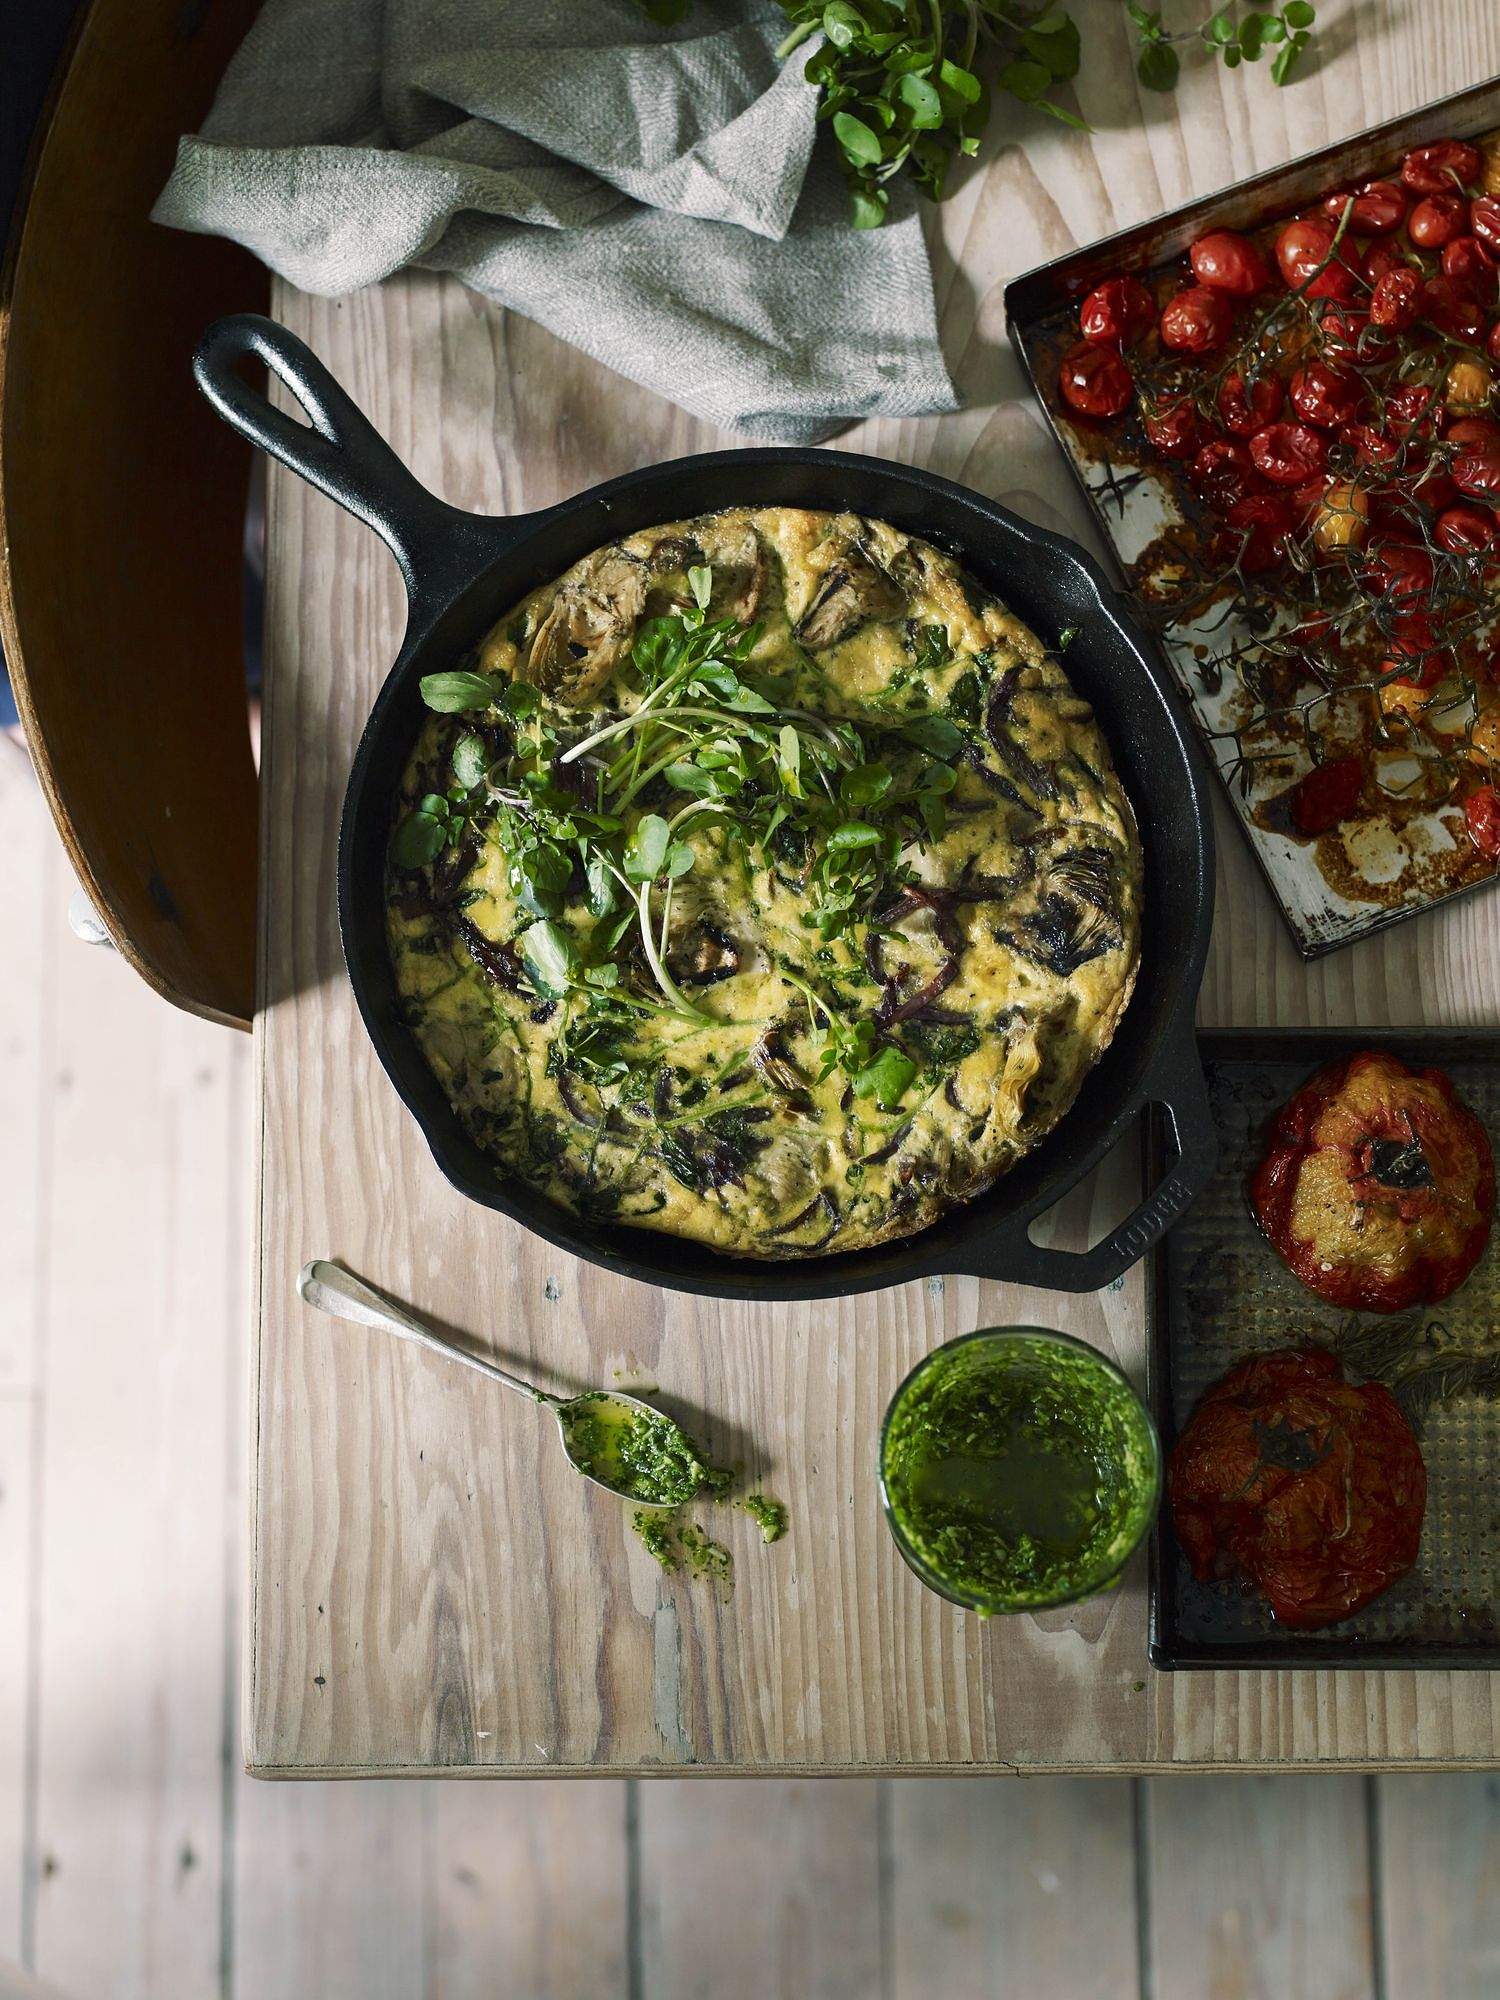 4 Summer Frittata Recipes - The Happy Foodie